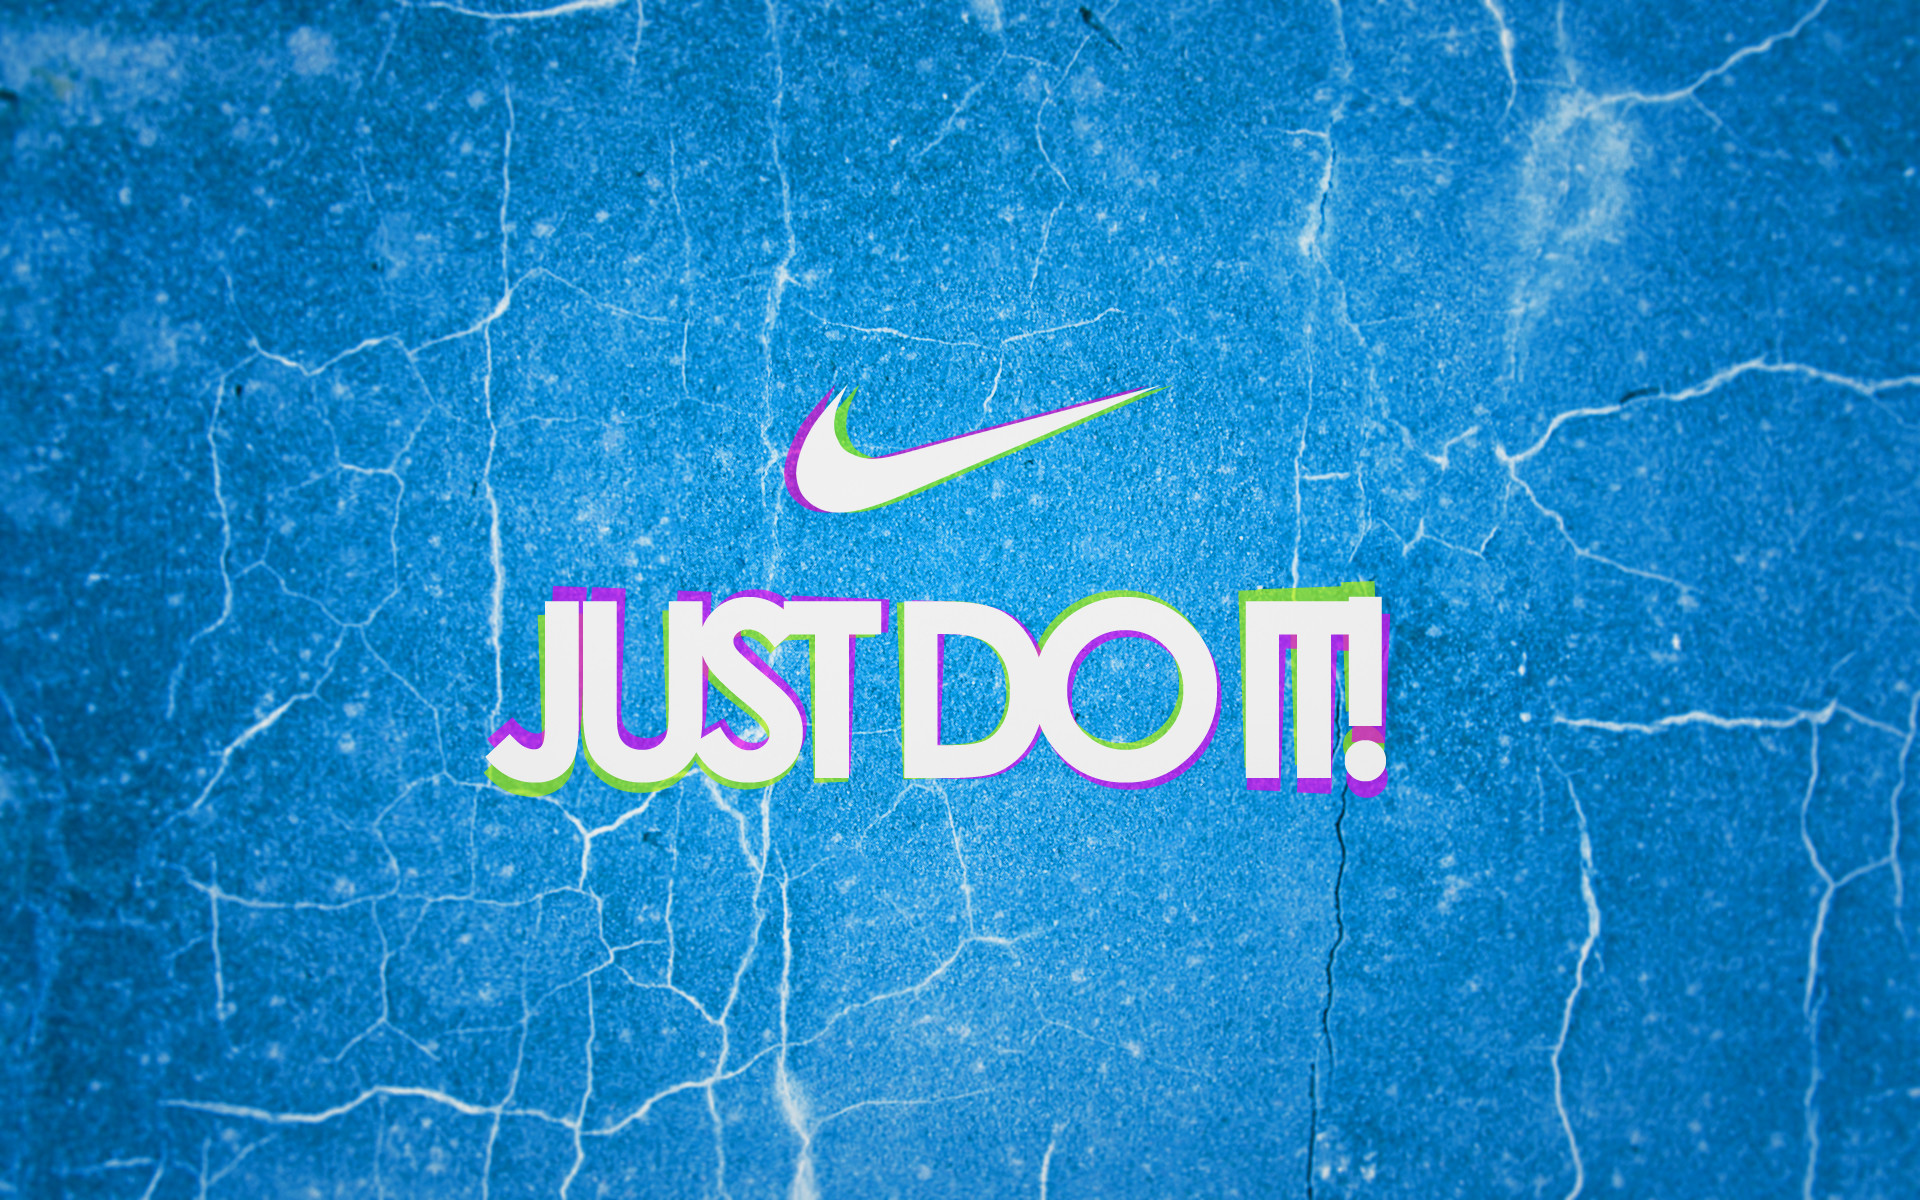 1920x1200 Image for nike just do it wallpaper